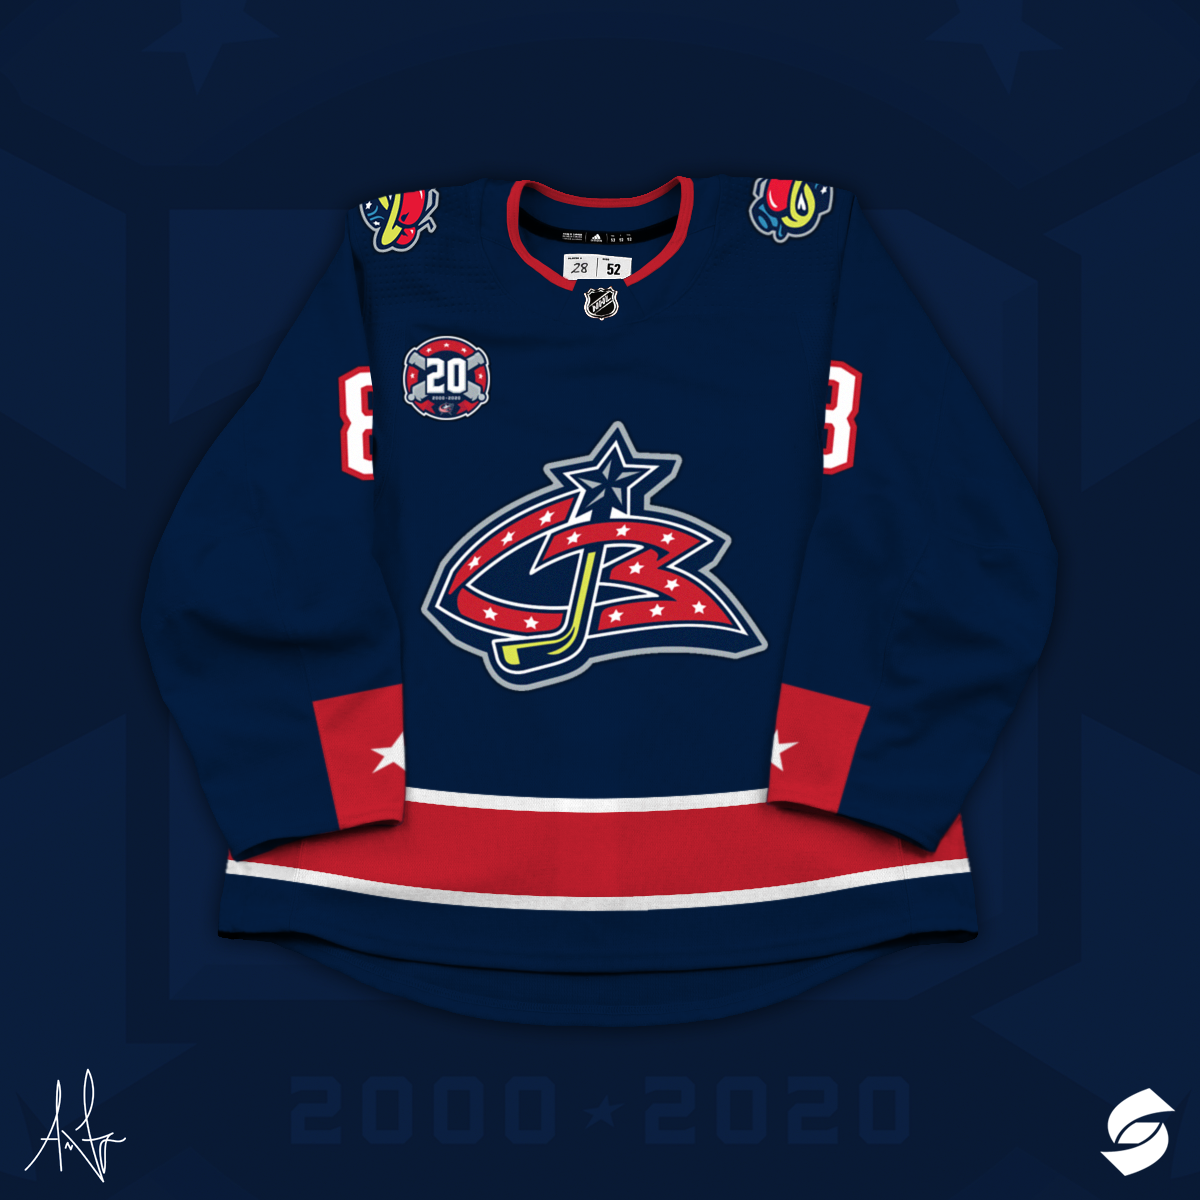 Columbus Blue Jackets 20th Anniversary Concept on Behance.